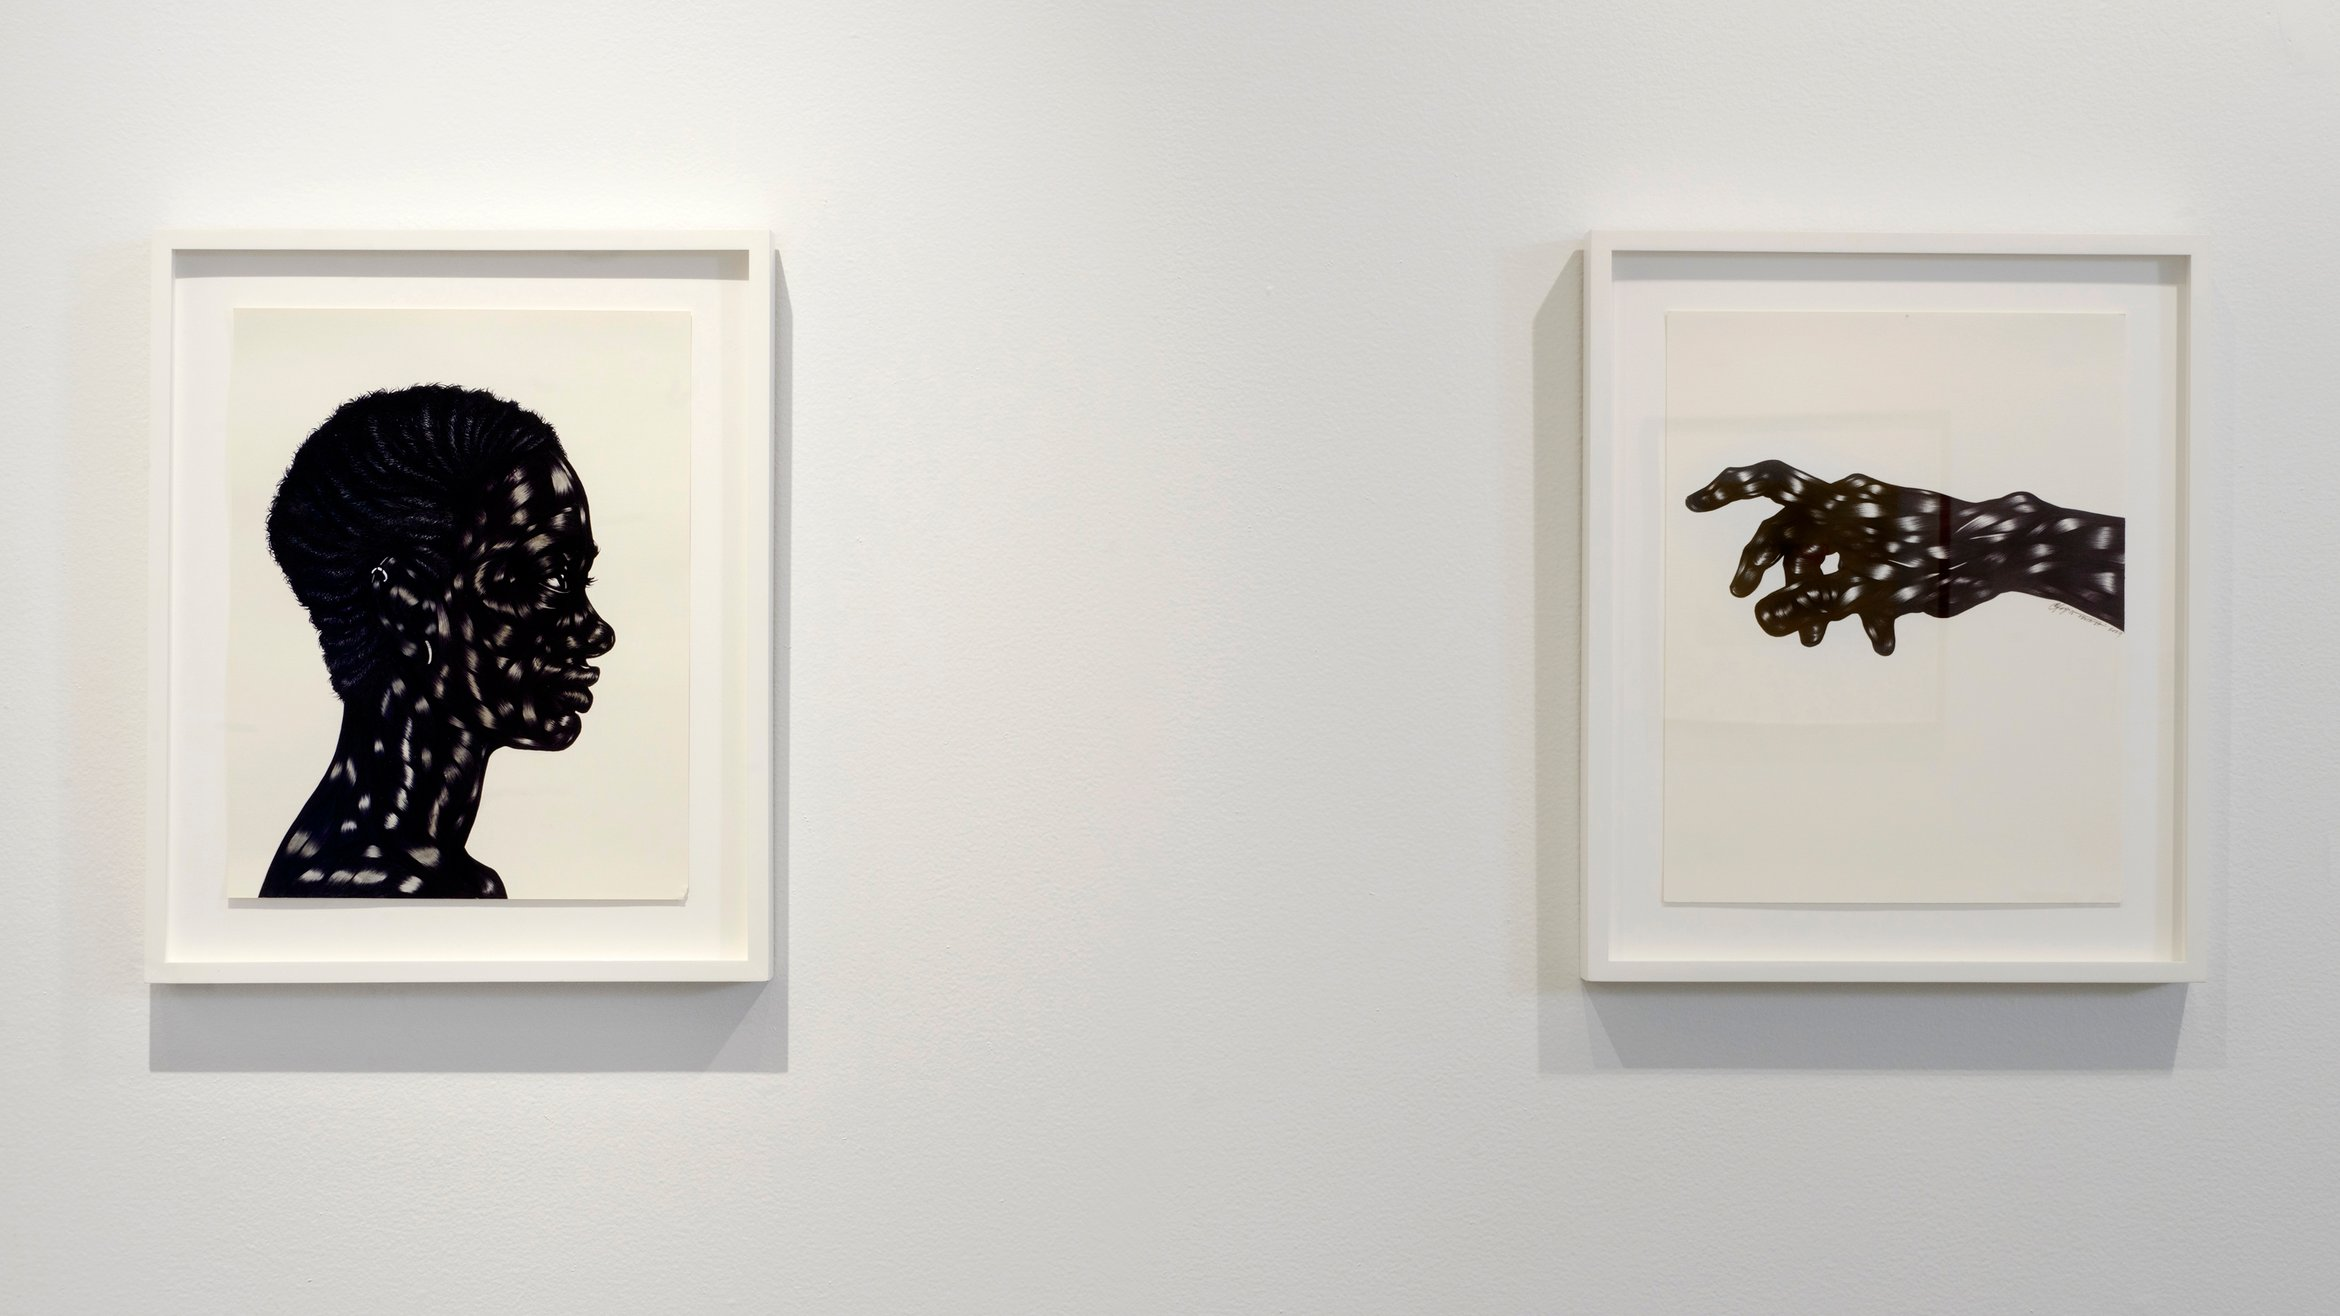 Cover Photo: ©Toyin Ojih Odutola.  Courtesy of the artist and Jack Shainman Gallery, New York. Installation image from Six Draughtsmen at MoCADA Photo Credit: Steven Harris